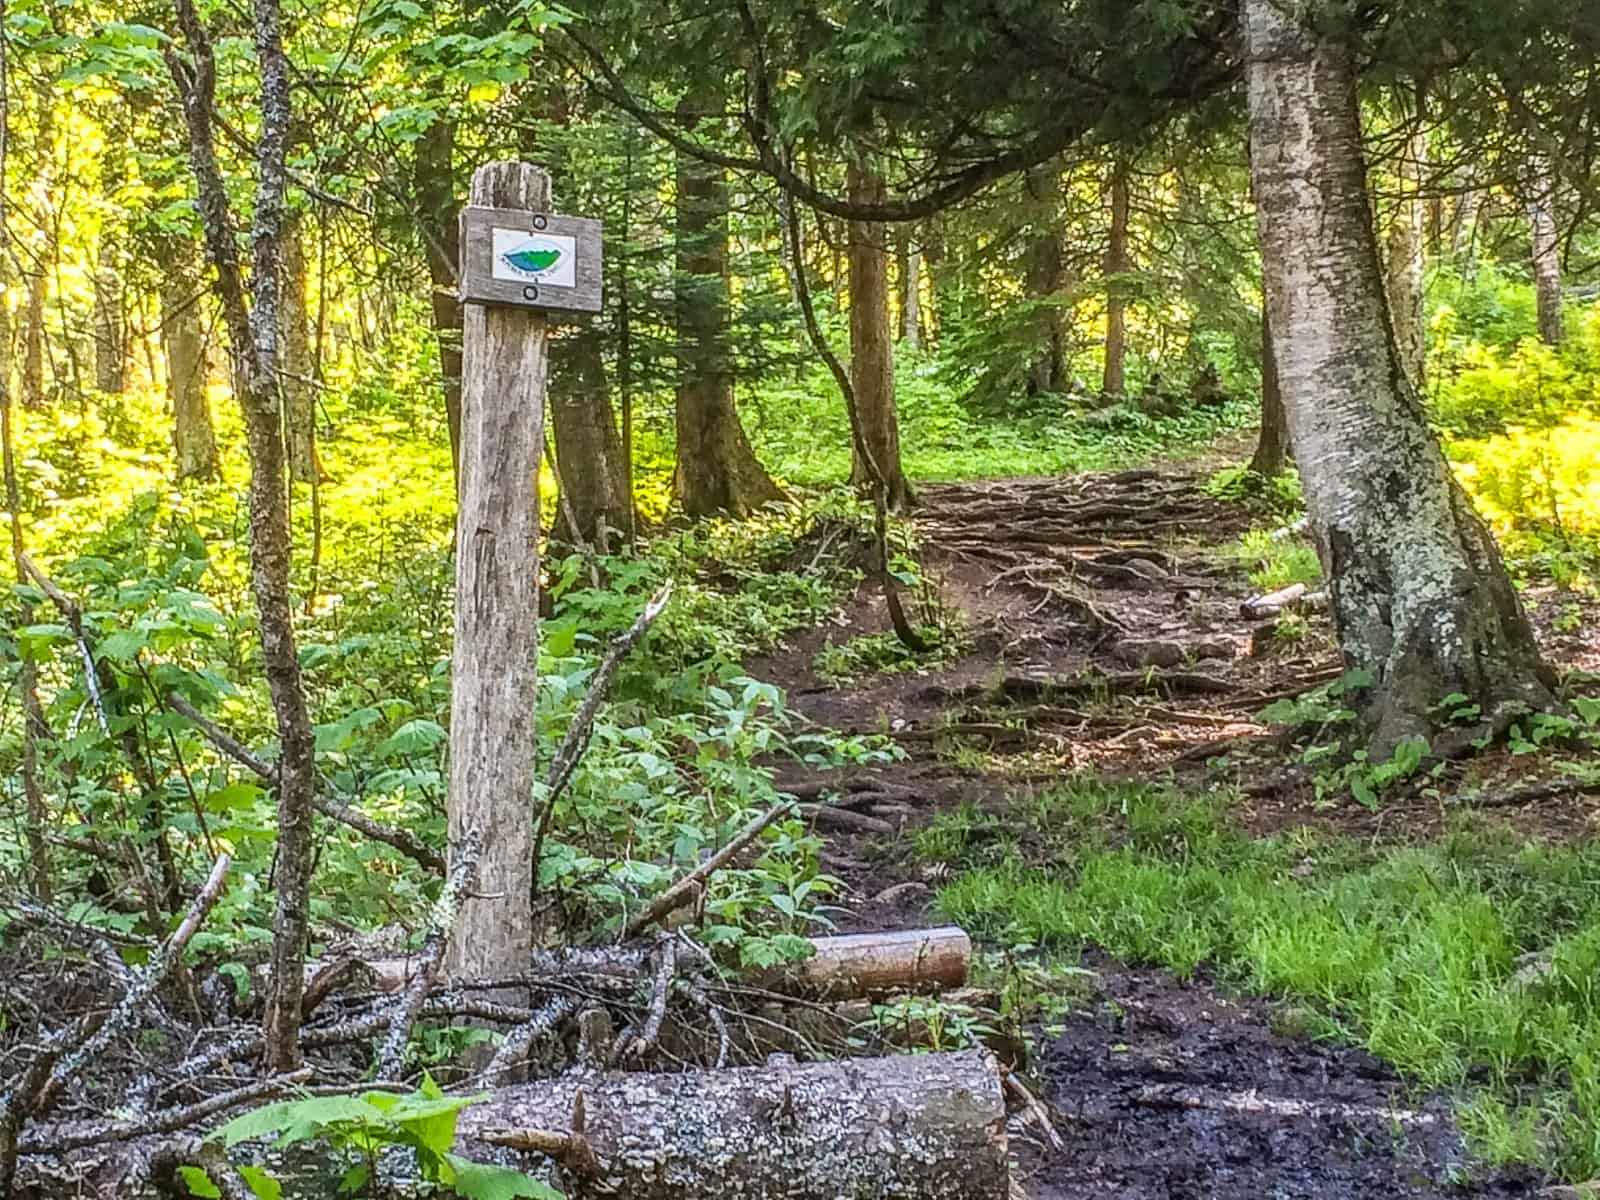 Superior Hiking Trail and Ski Trails at Cascade River State Park